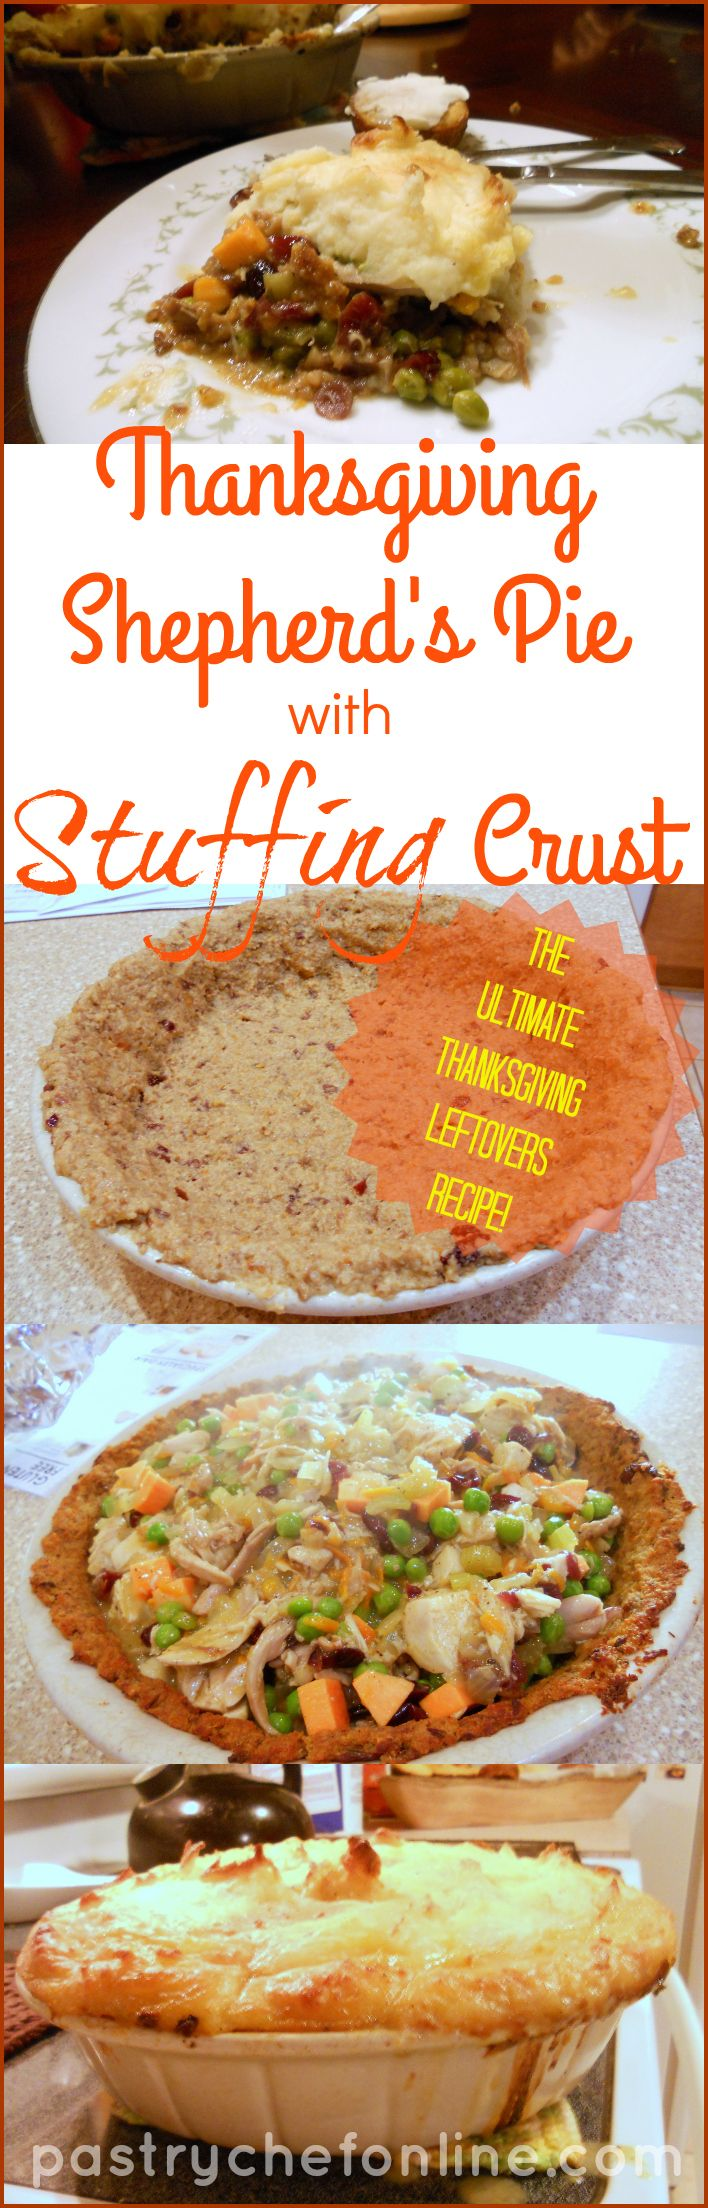 This Thanksgiving Shepherd's Pie with Stuffing Crust Recipe just may be the ultimate Thanksgiving leftovers recipe. Stuffing crust filled with succulent turkey, chunks of sweet potato, dried cranberries, peas and any other Thanksgiving leftovers you have all bound with rich turkey gravy and covered with a thick, creamy layer of toasted mashed potatoes. Fantastic! | pastrychefonline.com #thanksgivingfood